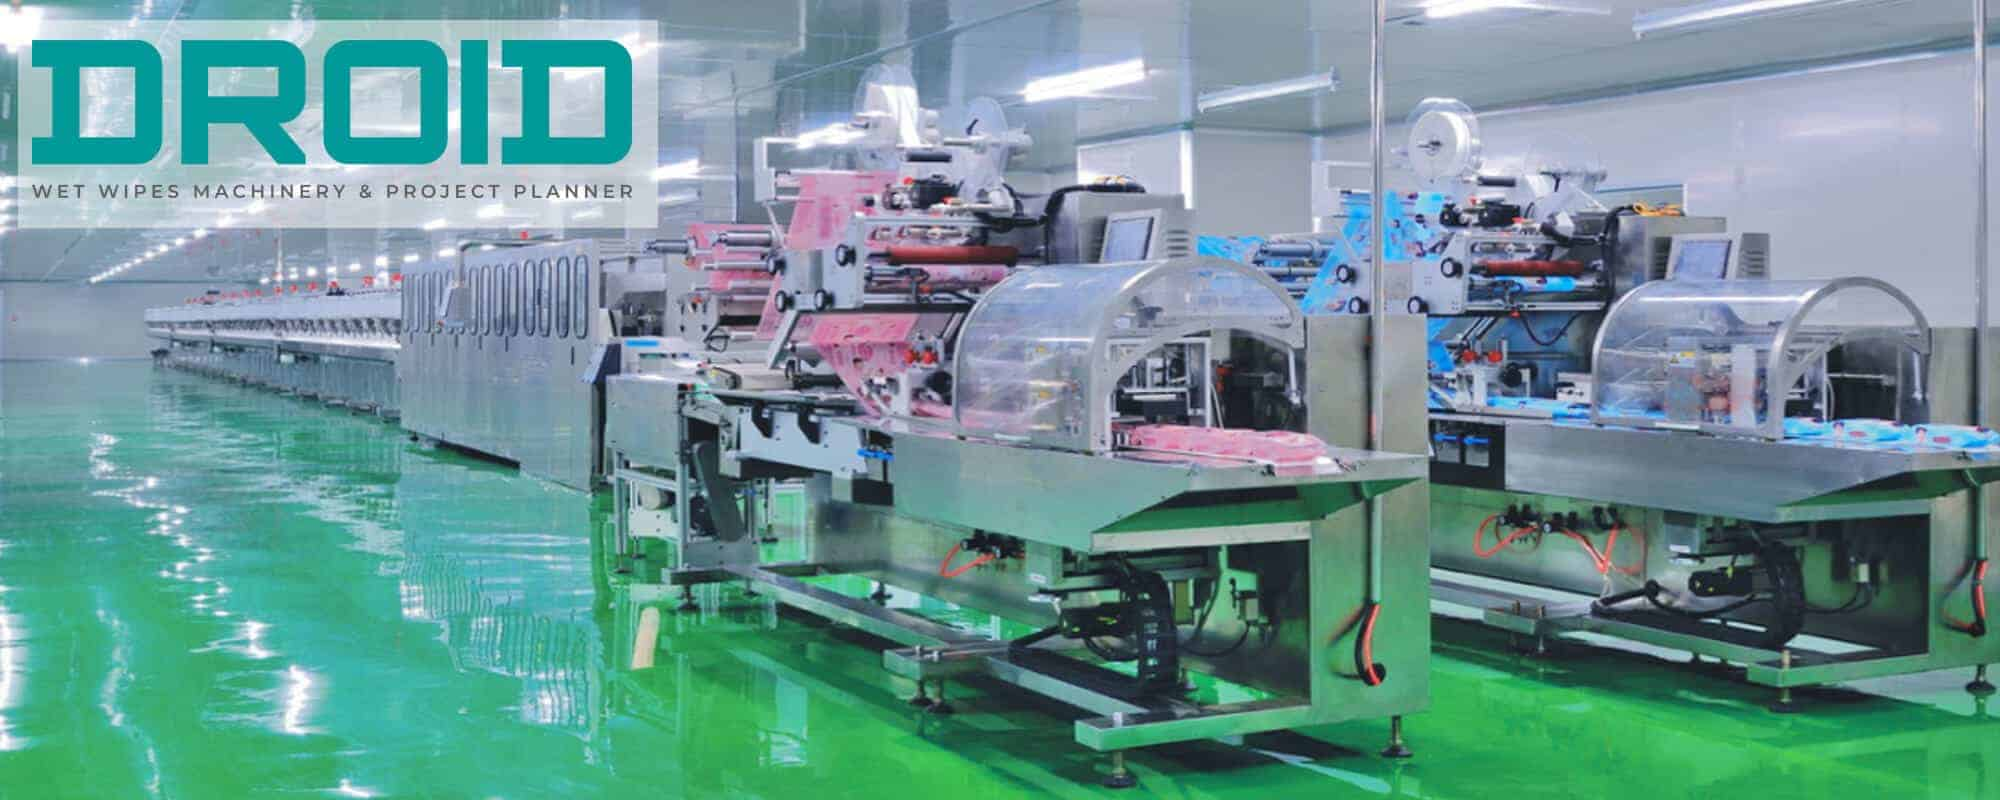 DH BH40 flow pack wet wipes machine - Are you looking for Disinfectant Wet Wipes Machine?